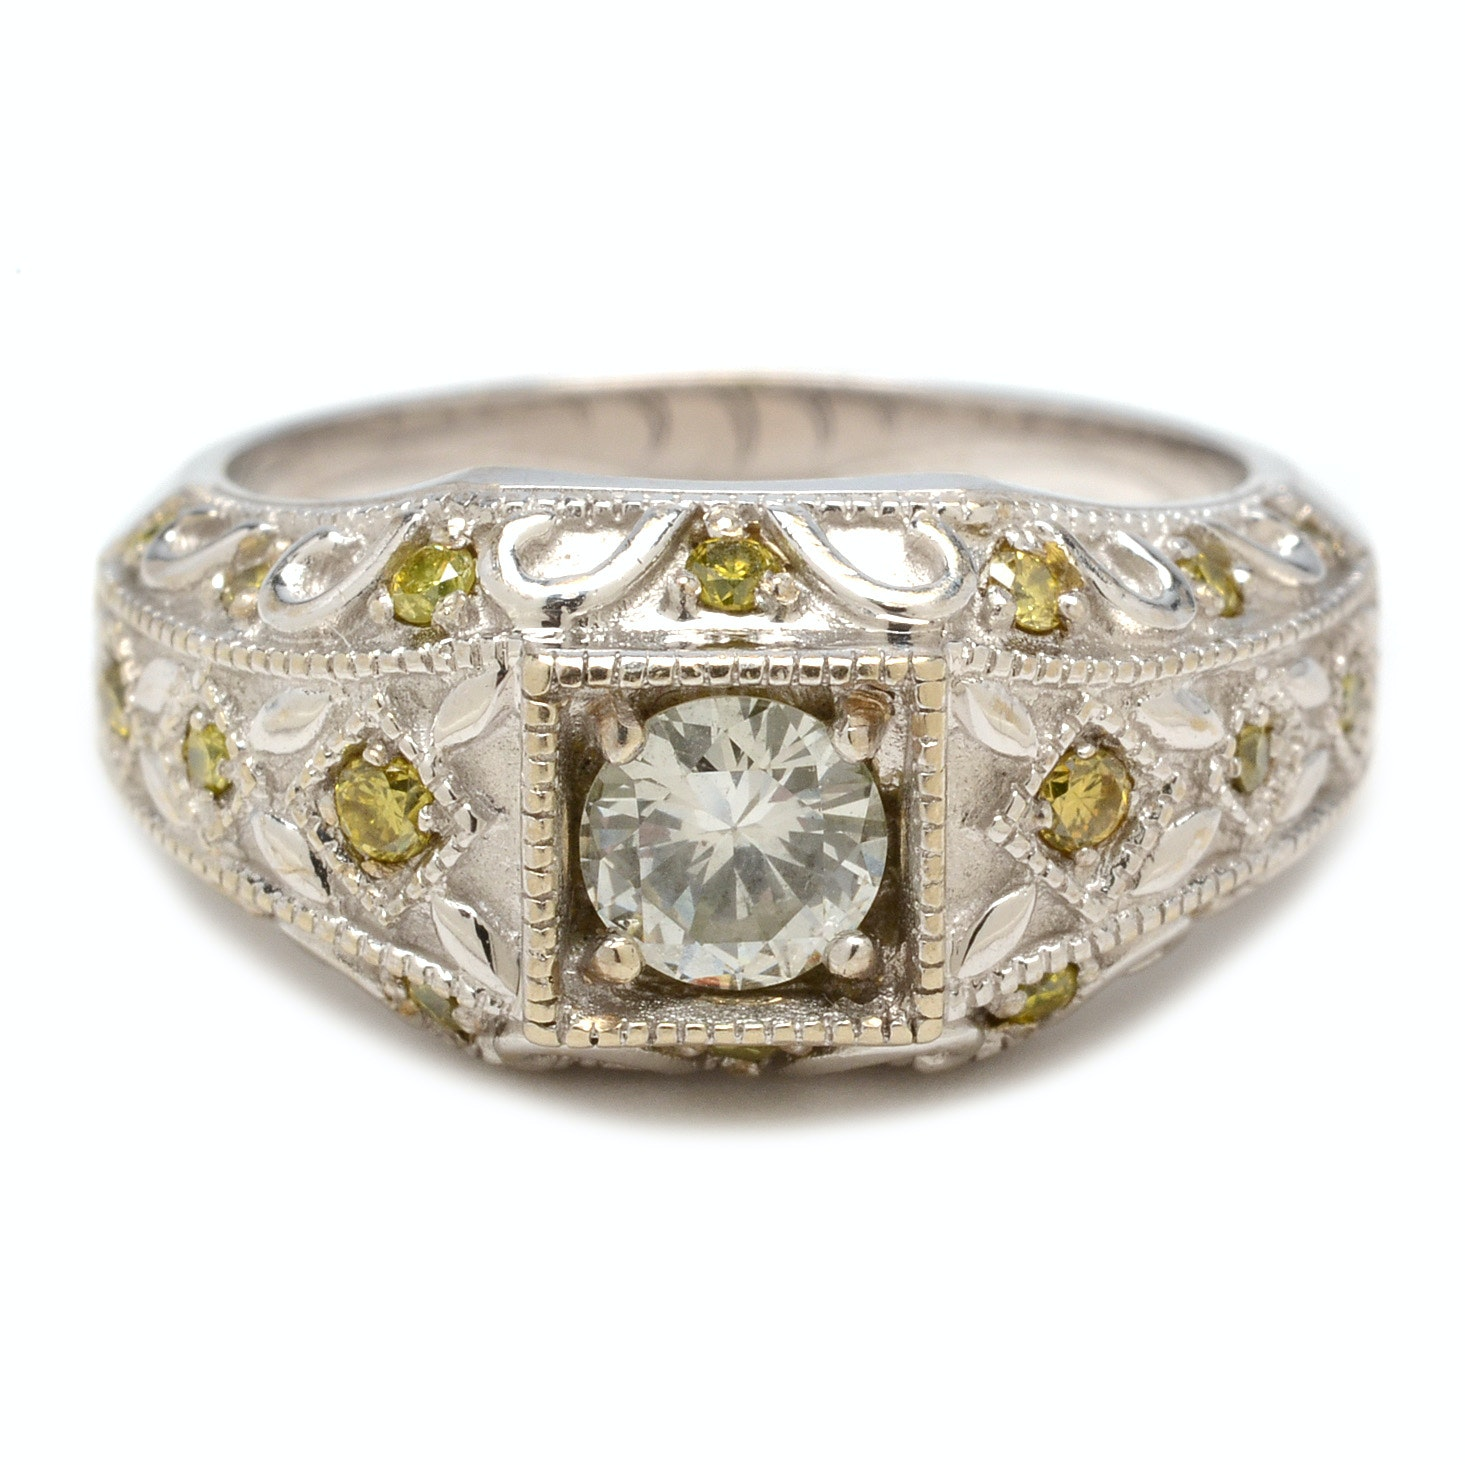 14K White Gold Diamond Ring With Yellow Diamond Accents